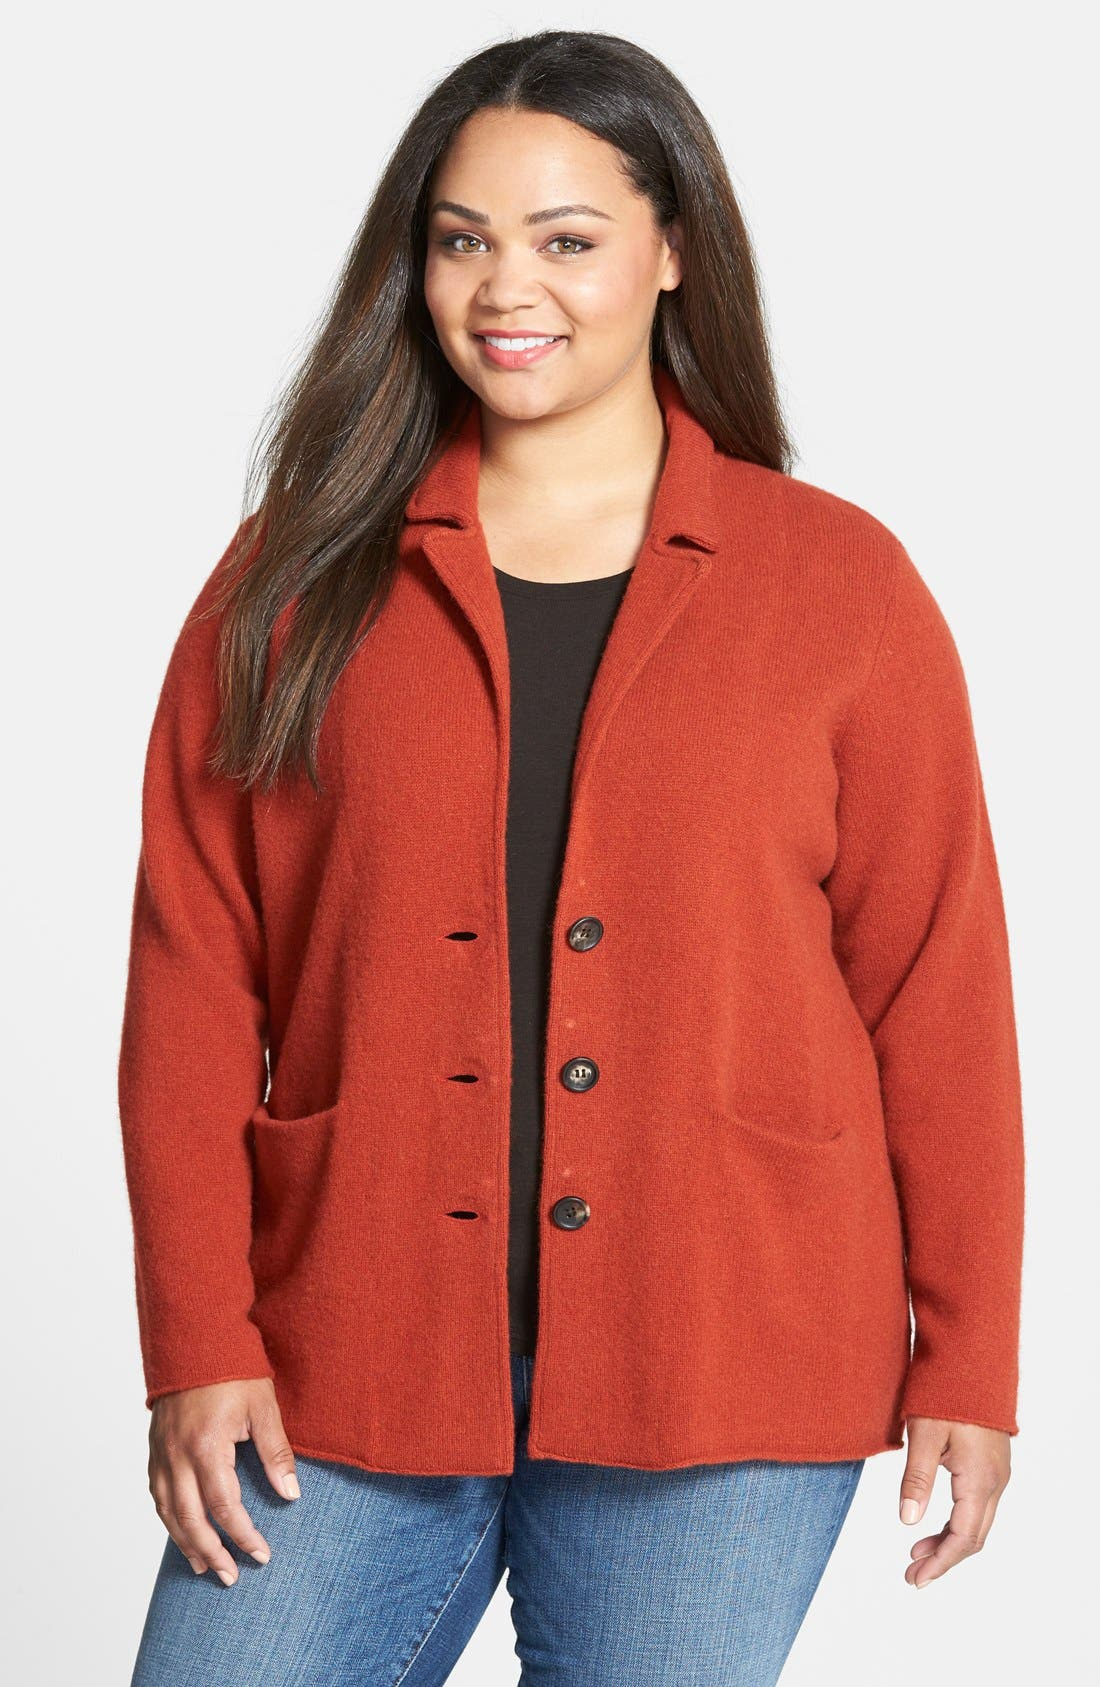 Alternate Image 1 Selected - Eileen Fisher Collar Wool Sweater Jacket (Plus Size)